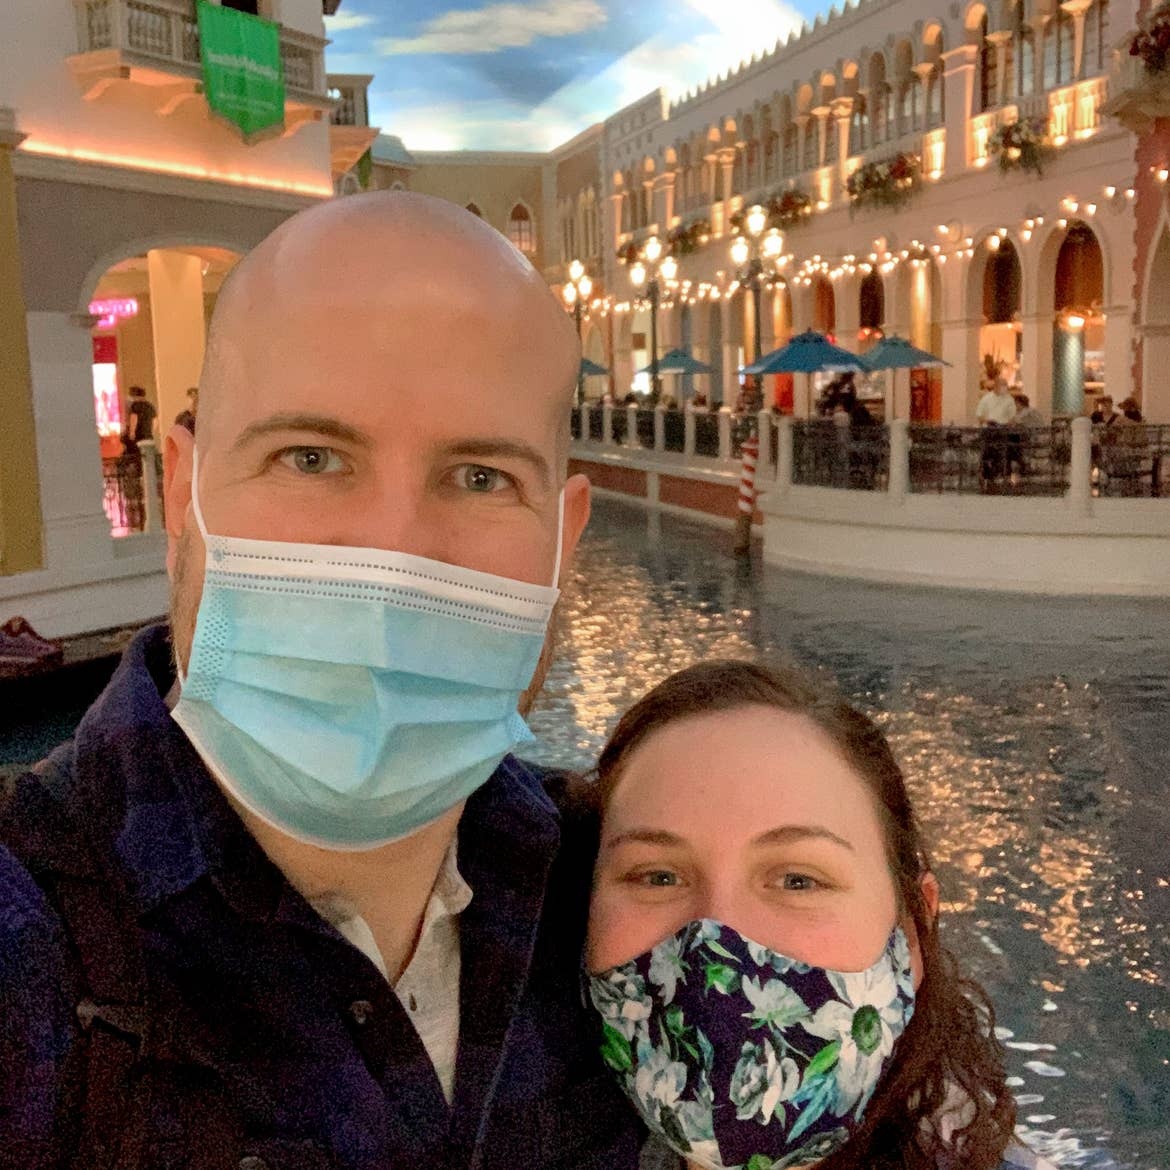 Featured Contributor, Ashley Fraboni (right) and her fiancé, Nicholas (left), wear face masks while posing in front of the canal at the Venetian Las Vegas.